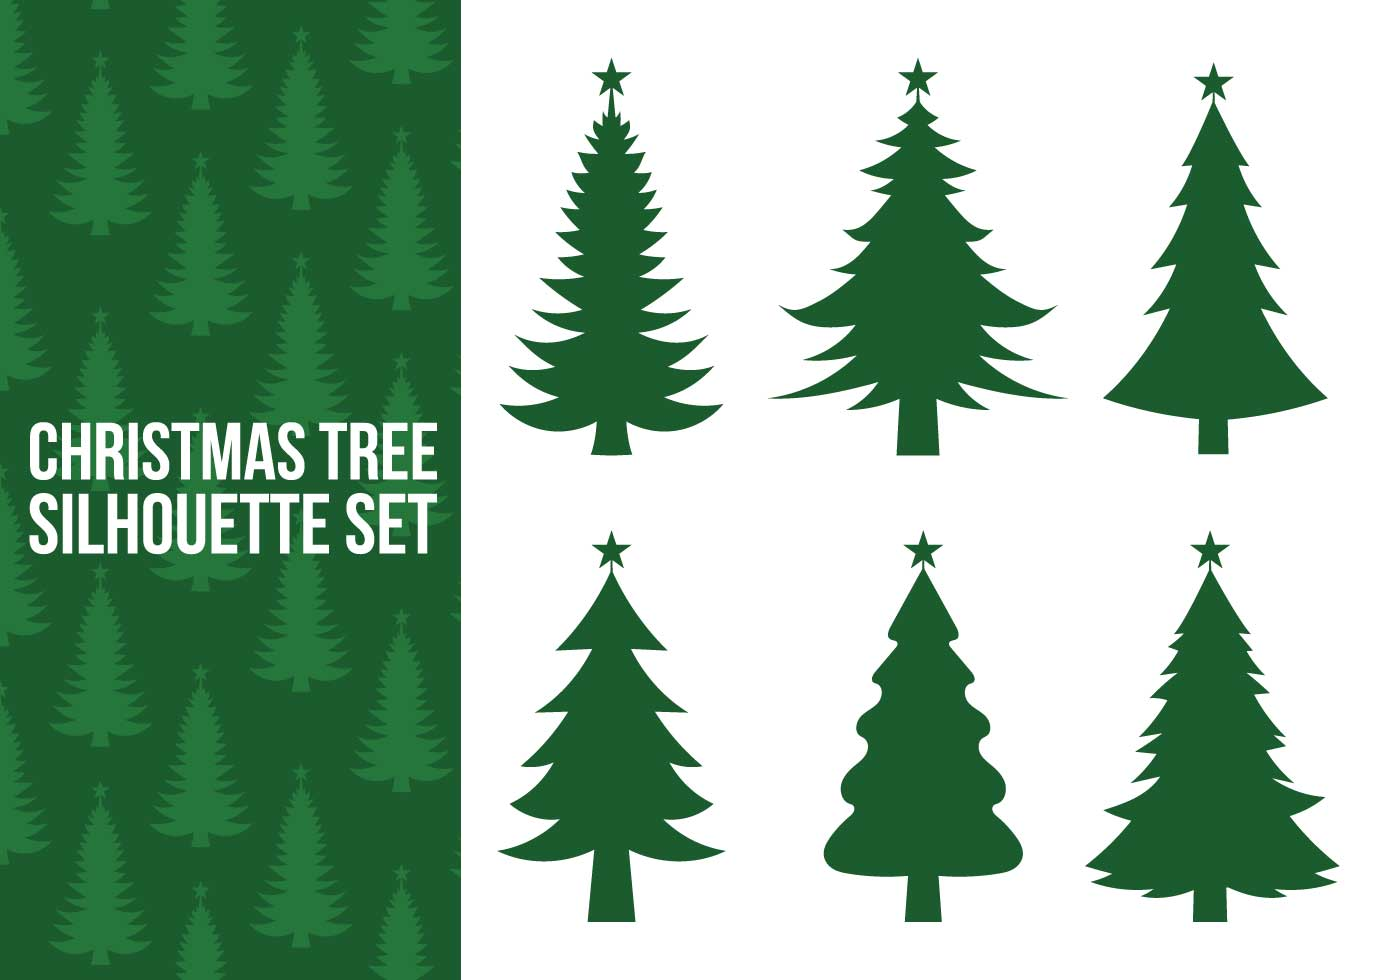 Christmas Tree Vector.Christmas Tree Silhouette Free Vector Art 660 Free Downloads